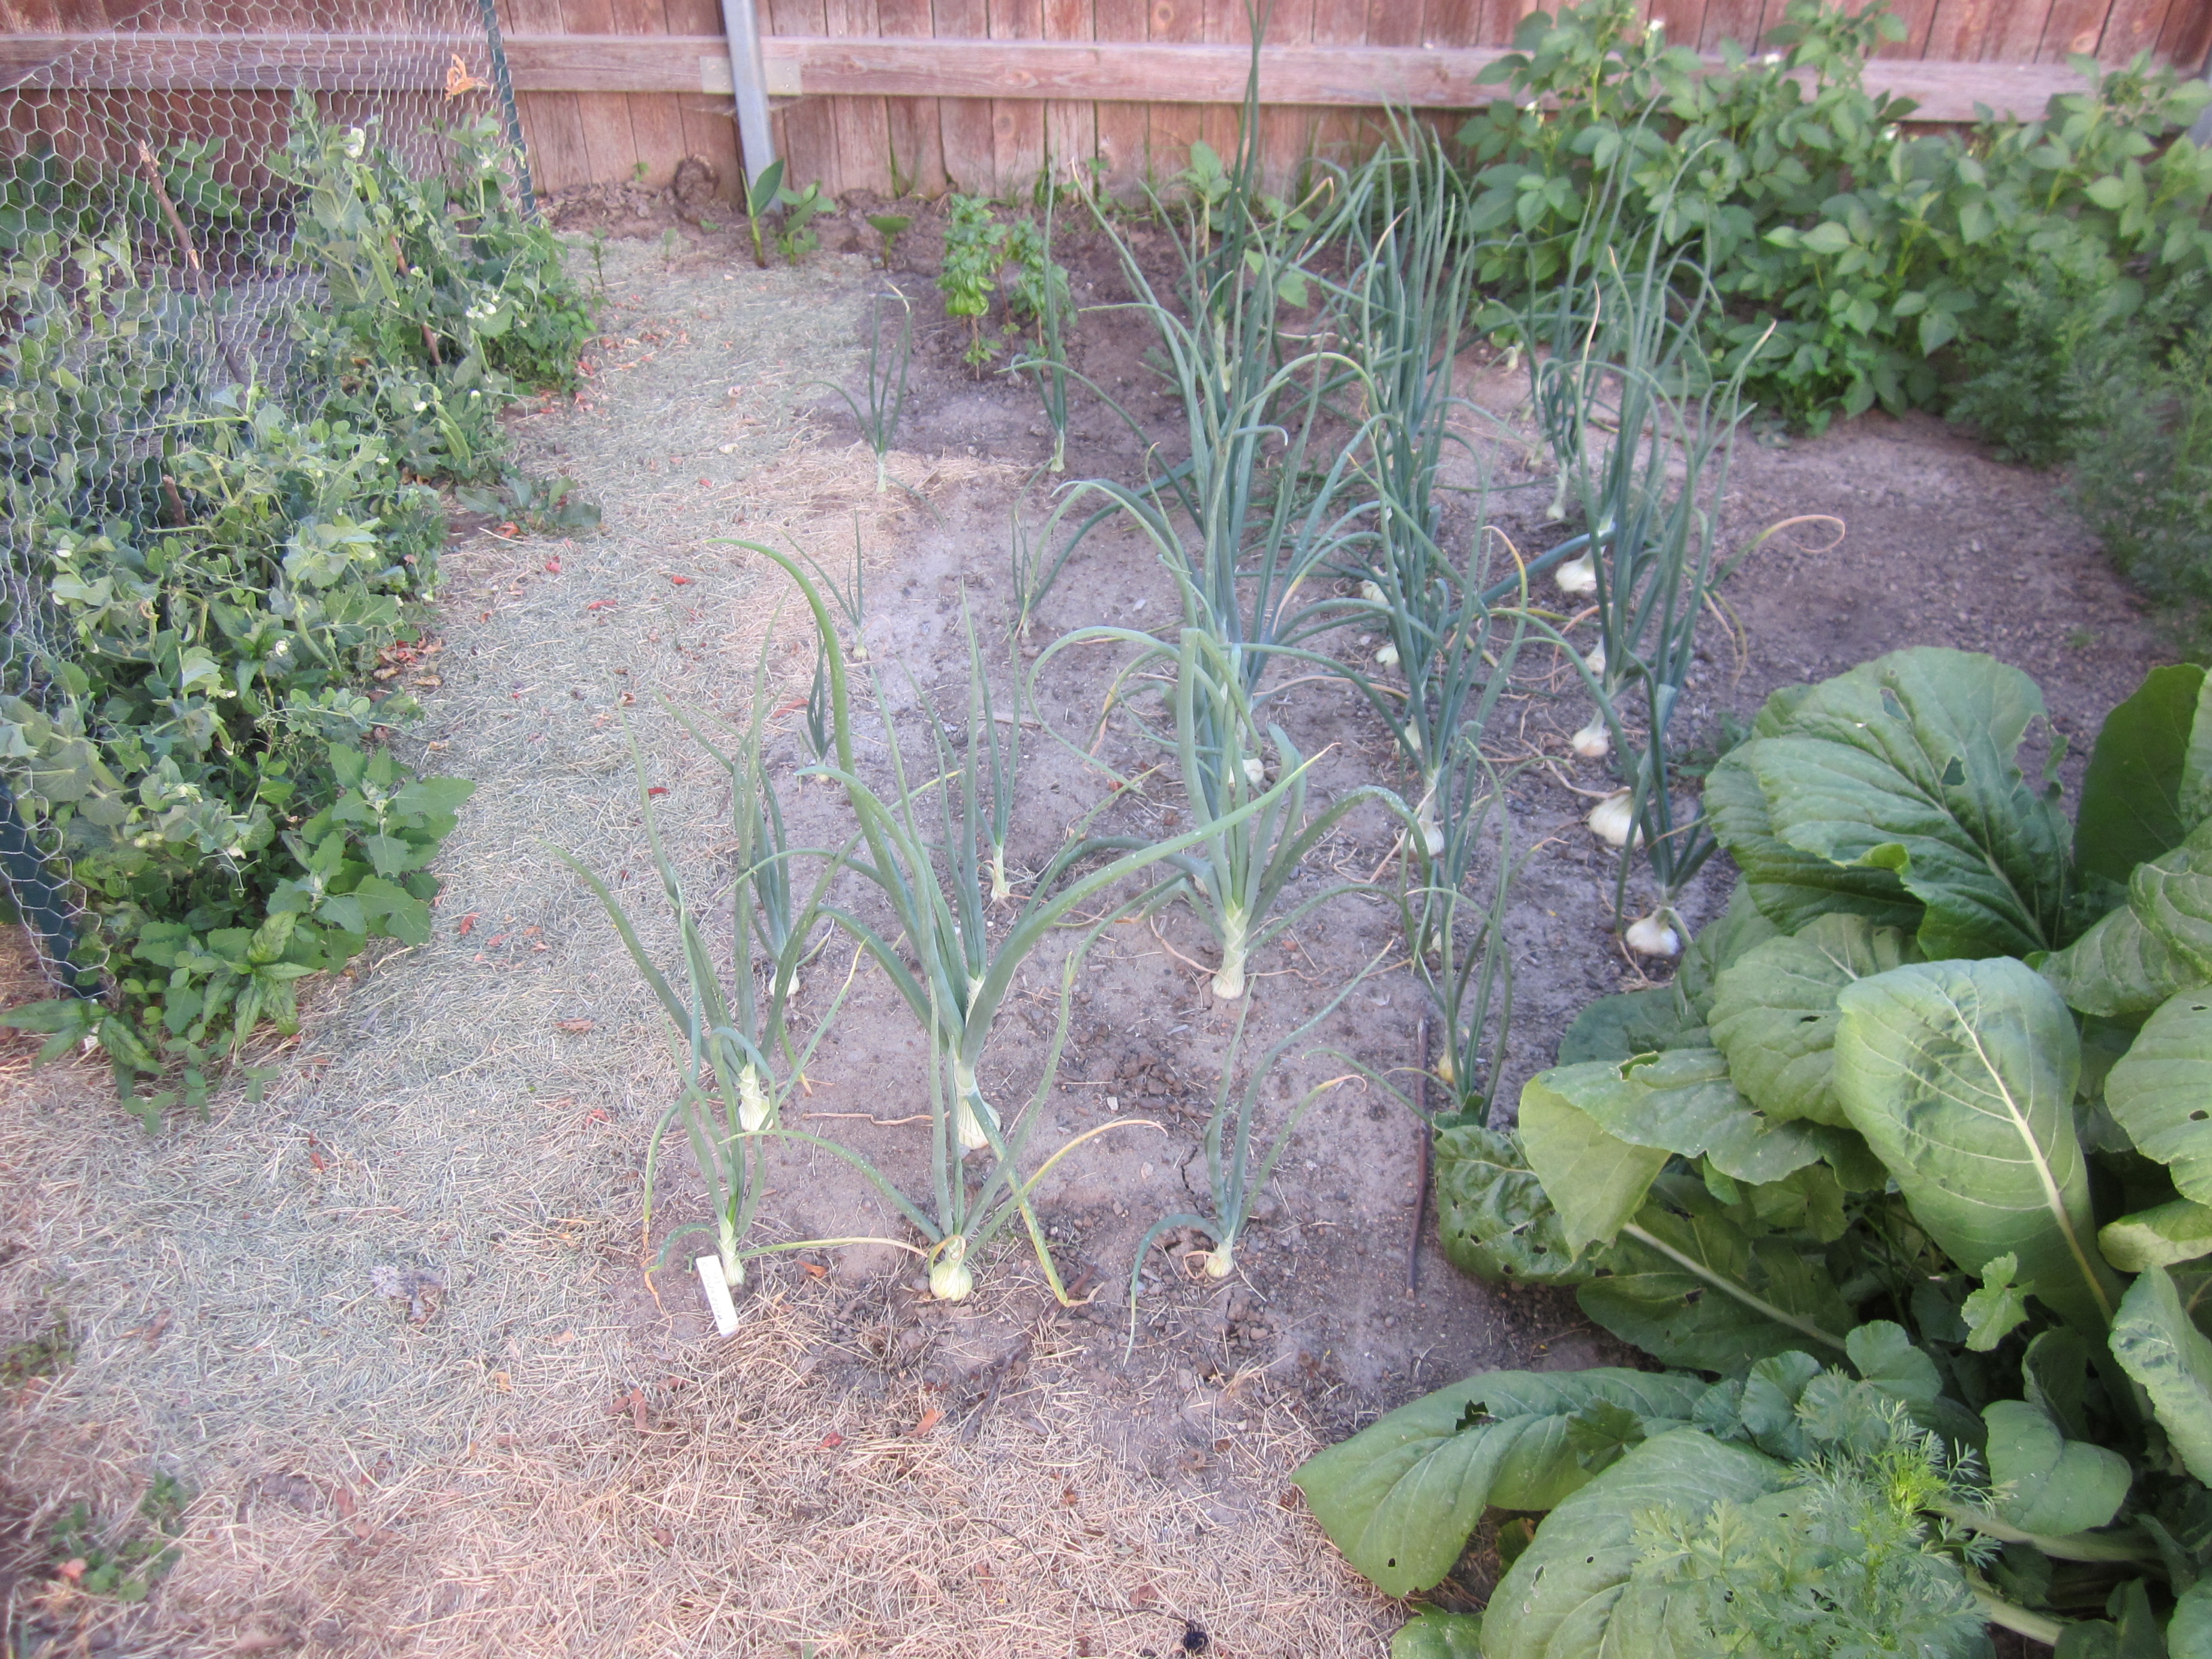 Onions and Peas Growing in the Garden